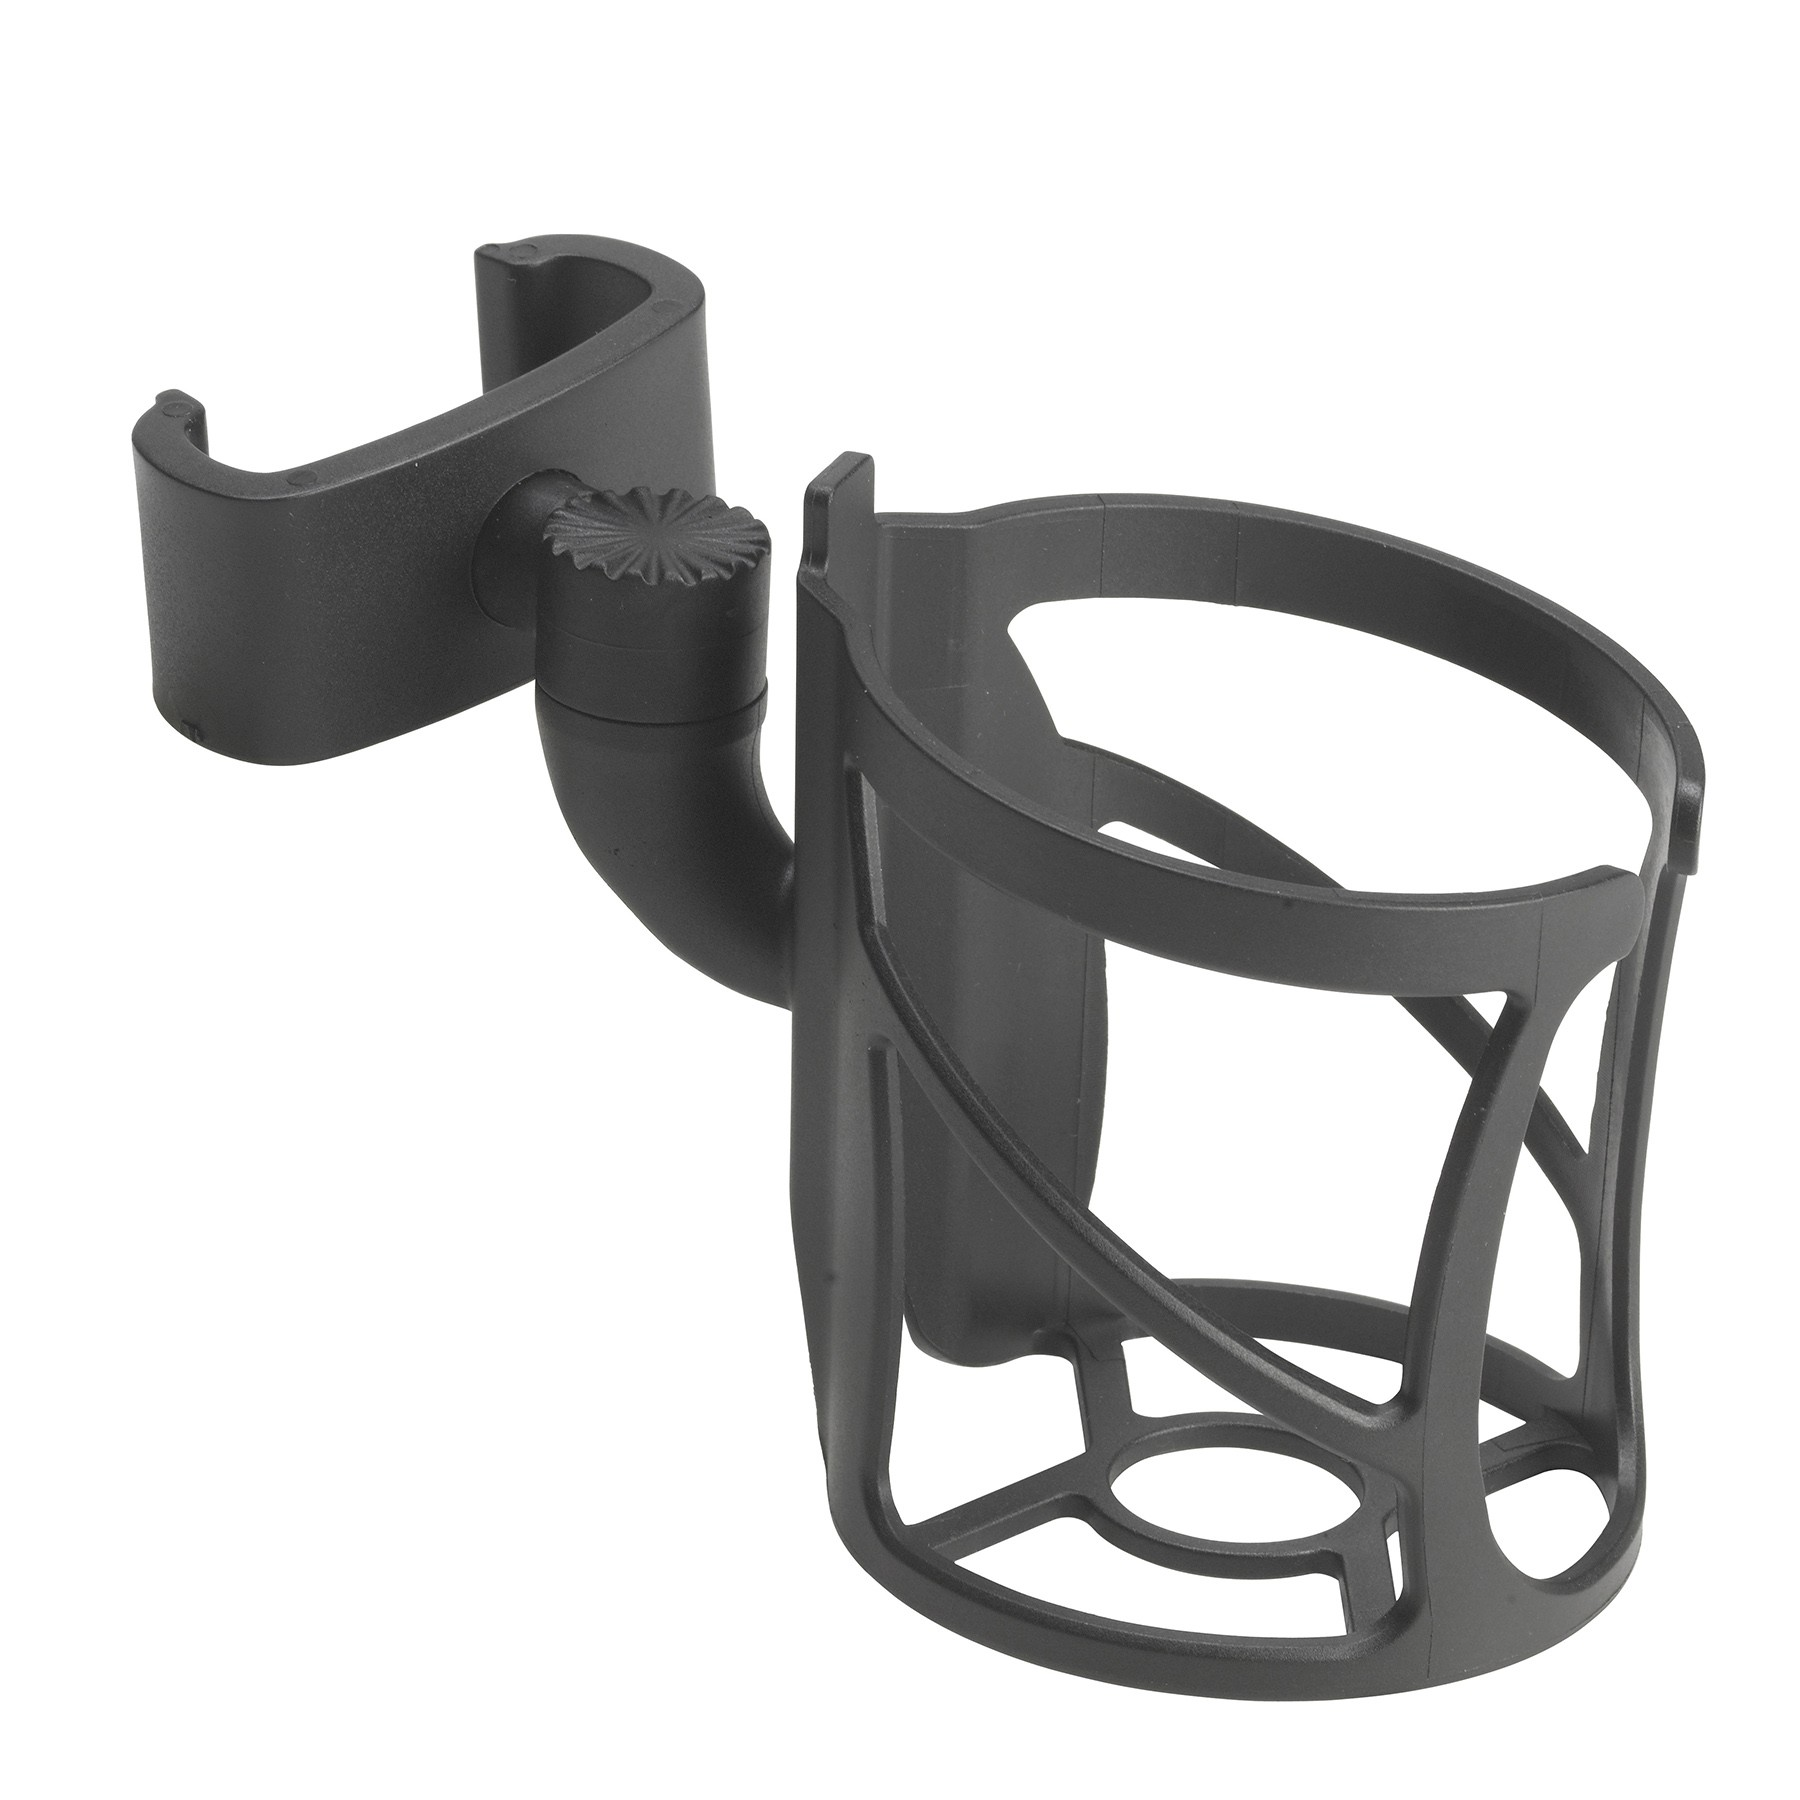 Nitro Cup Holder - On The Mend Medical Supplies & Equipment